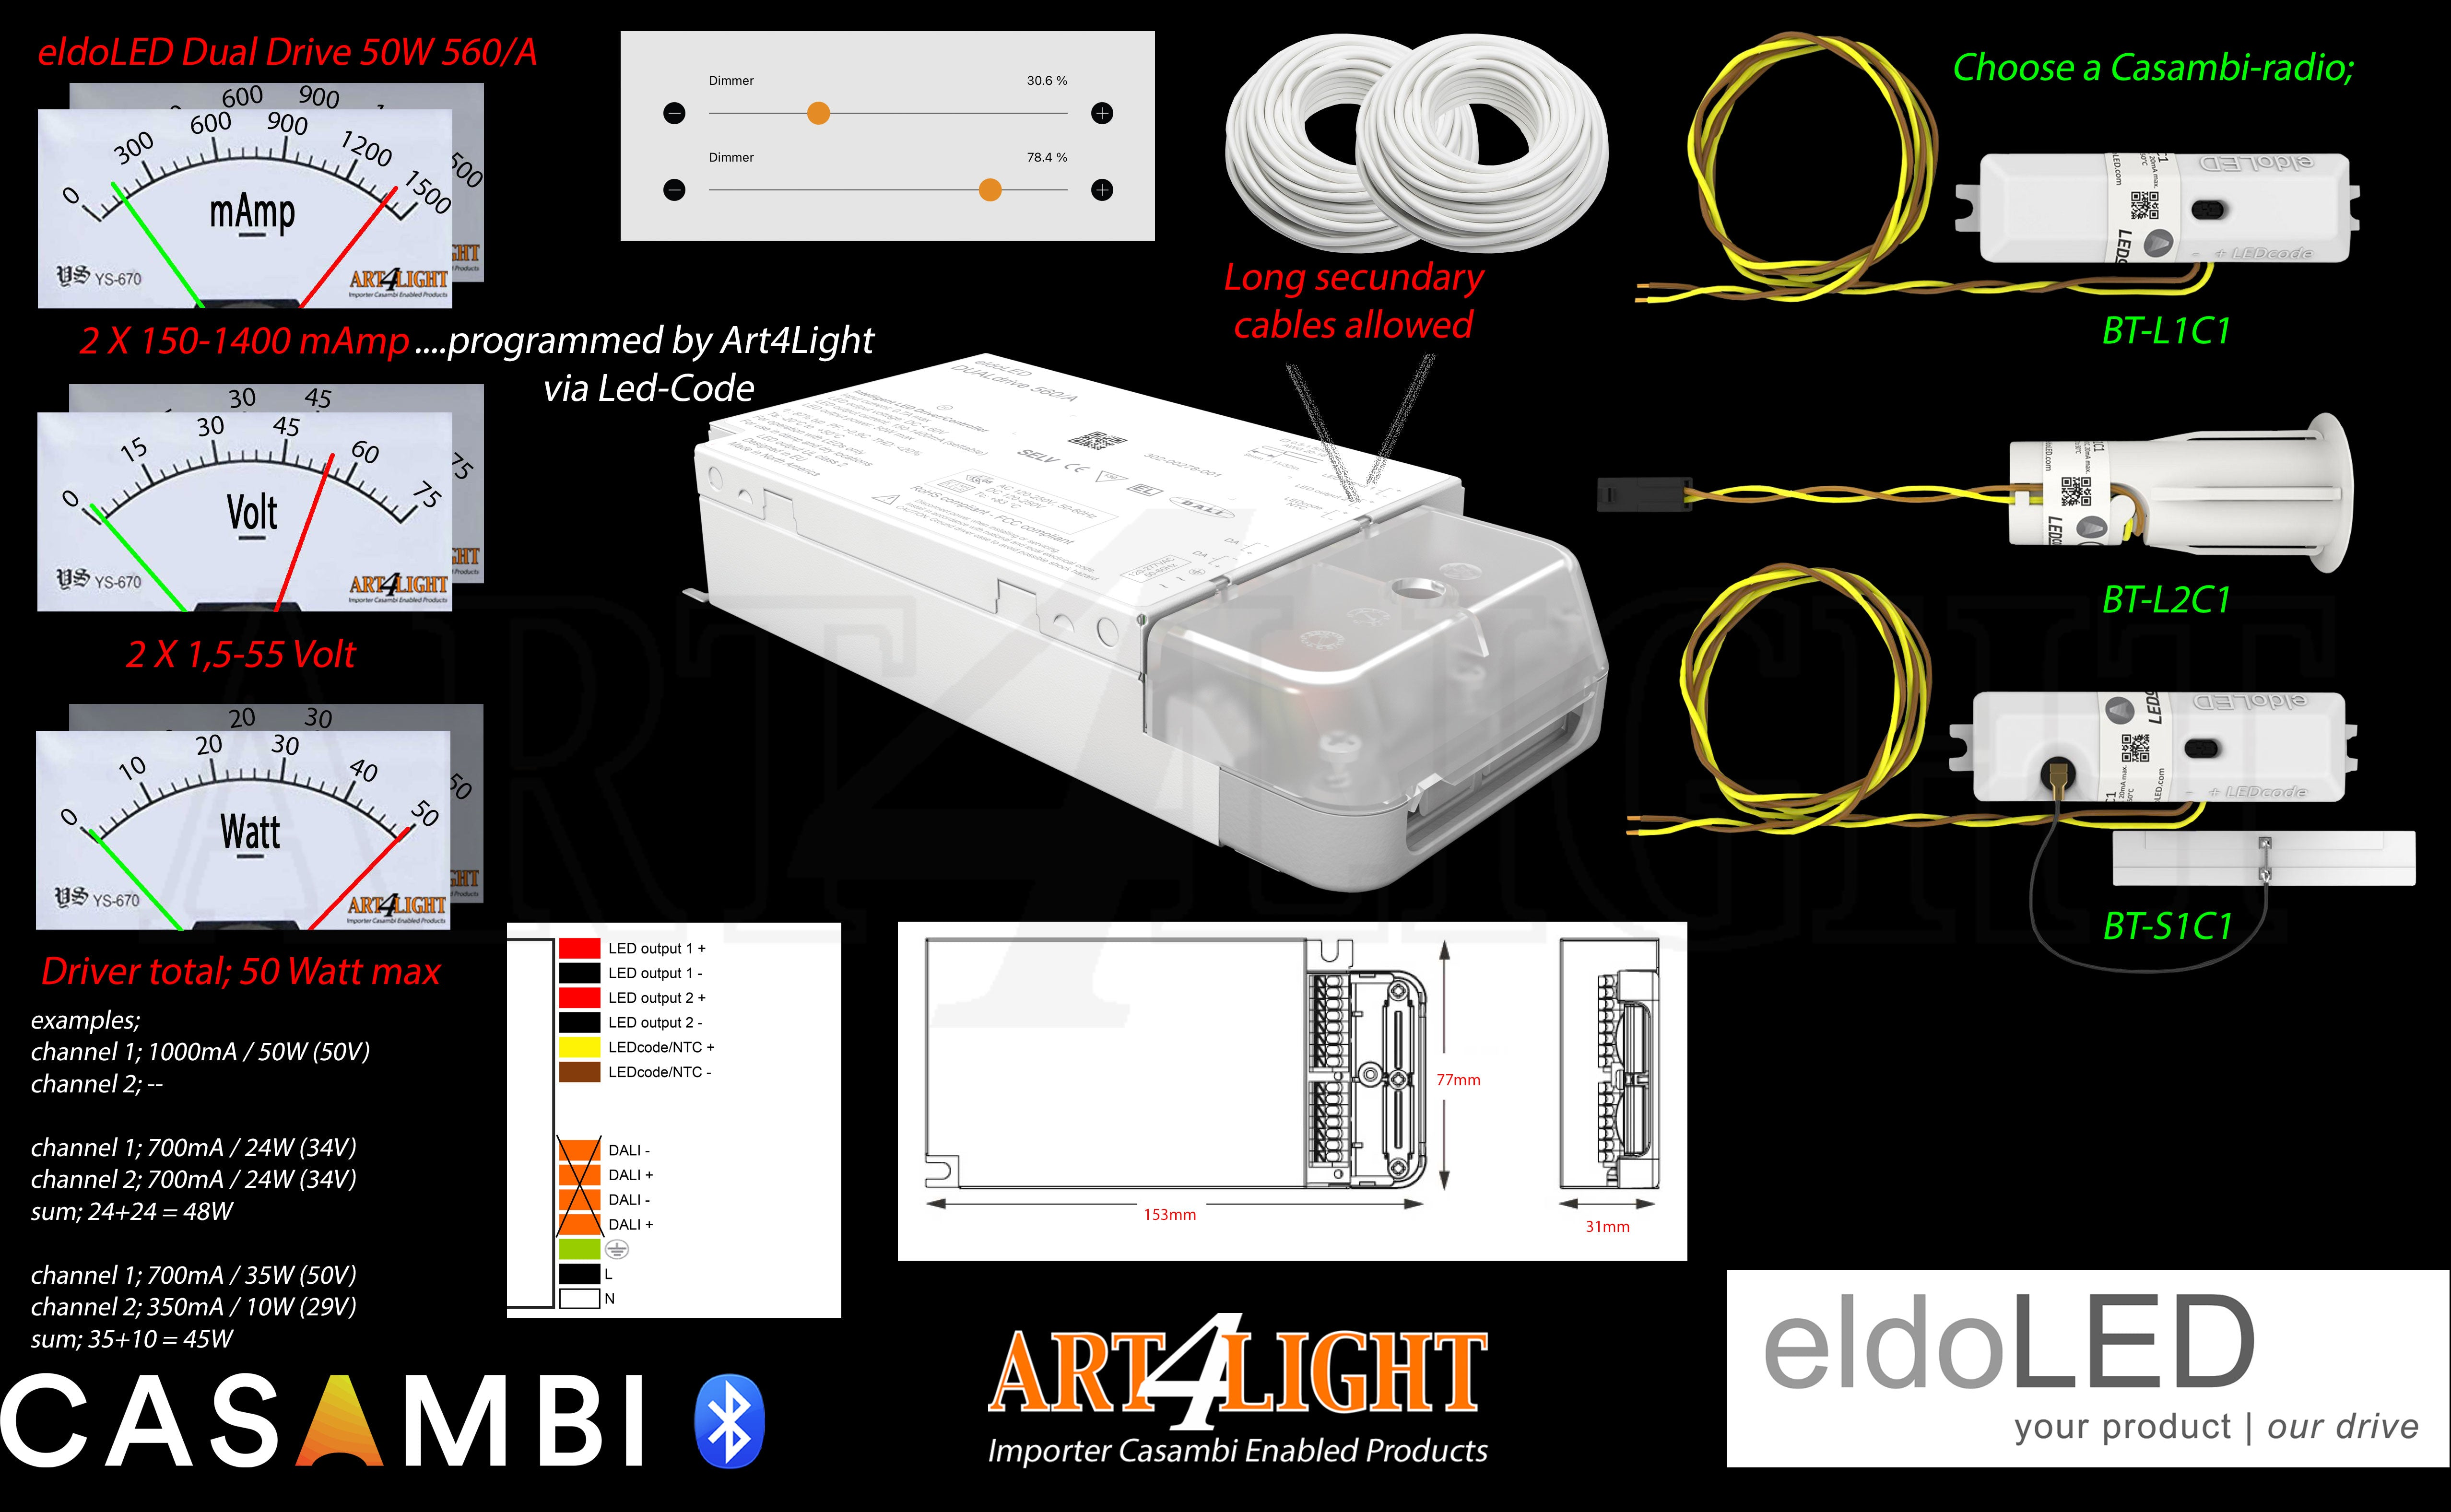 OVERVIEW OF CONFIGURATION  ELDOLED_DUALDRIVE_50W_CASAMBI